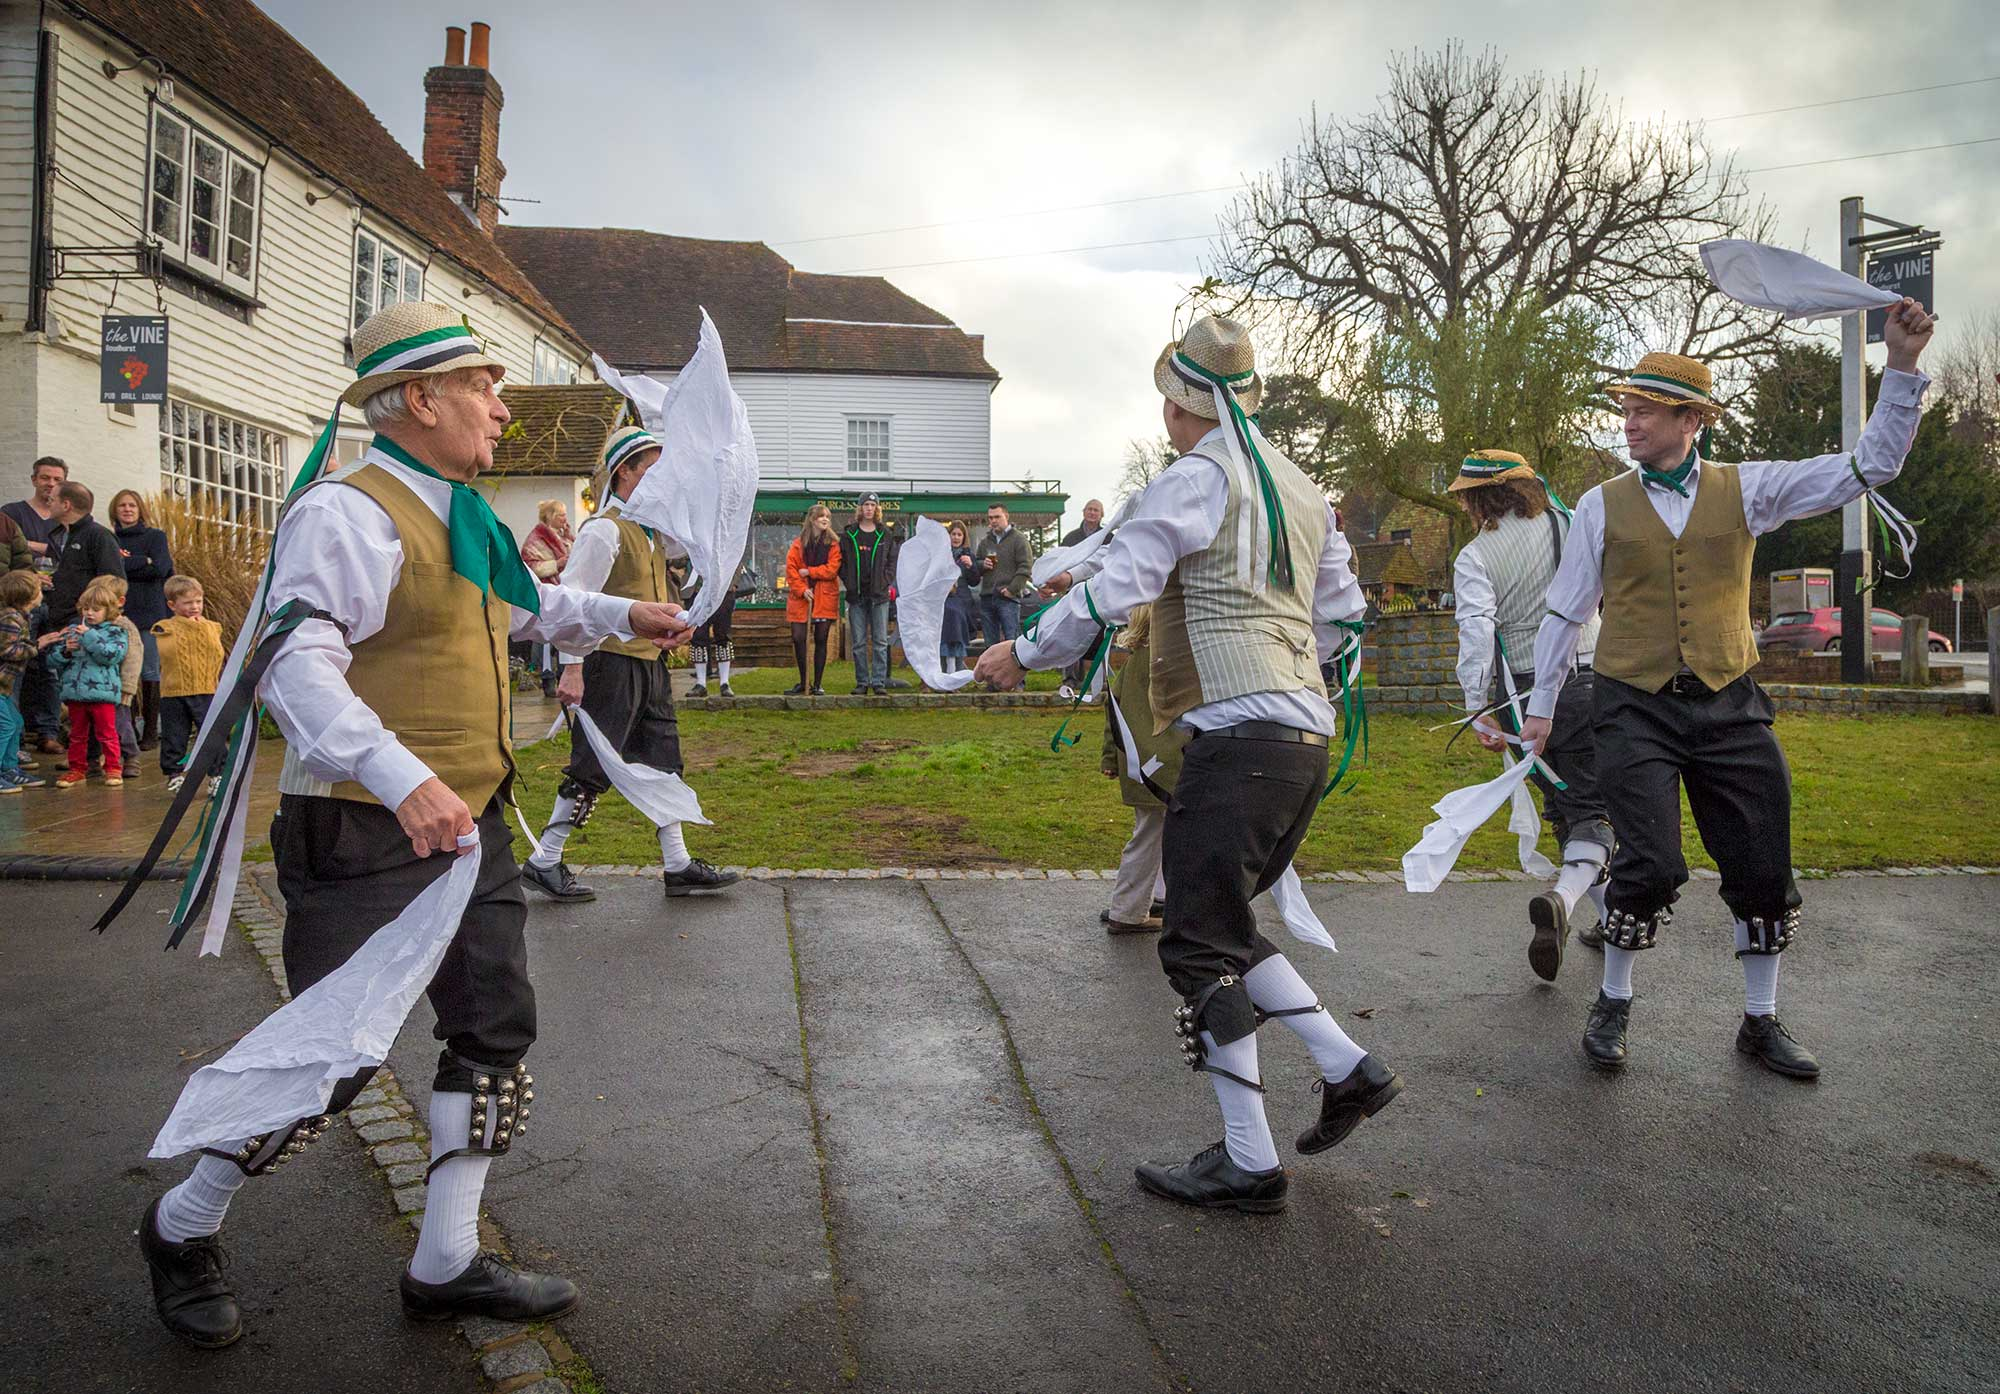 Weald of Kent Morris dance outside The Vine, Goudhurst